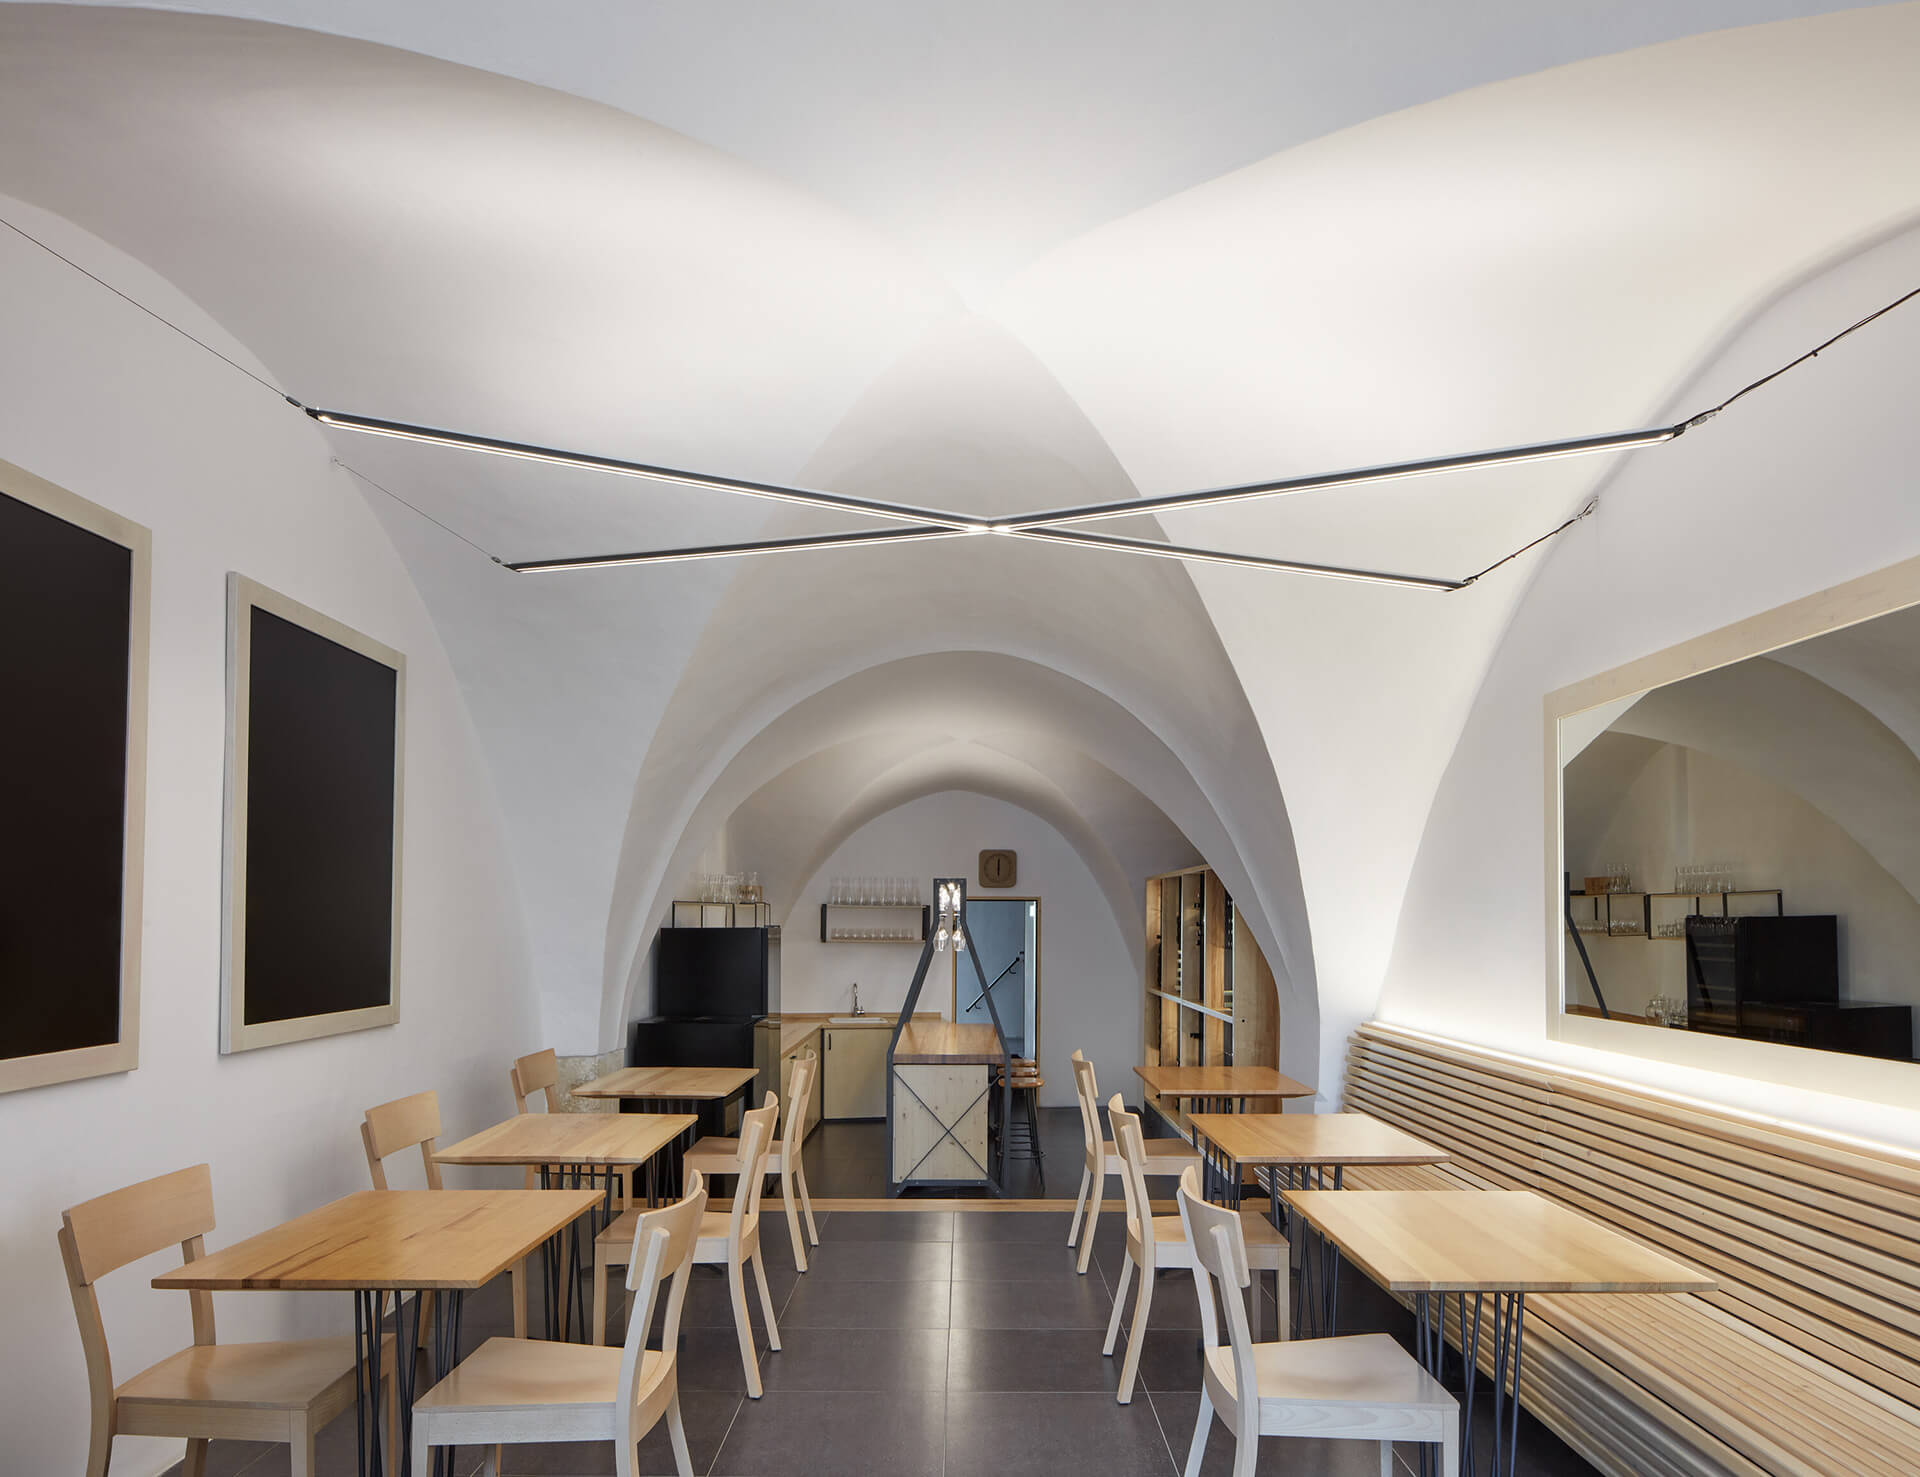 The double cross vaulted wine bar |Winery Nešetřil by ORA | STIRworld